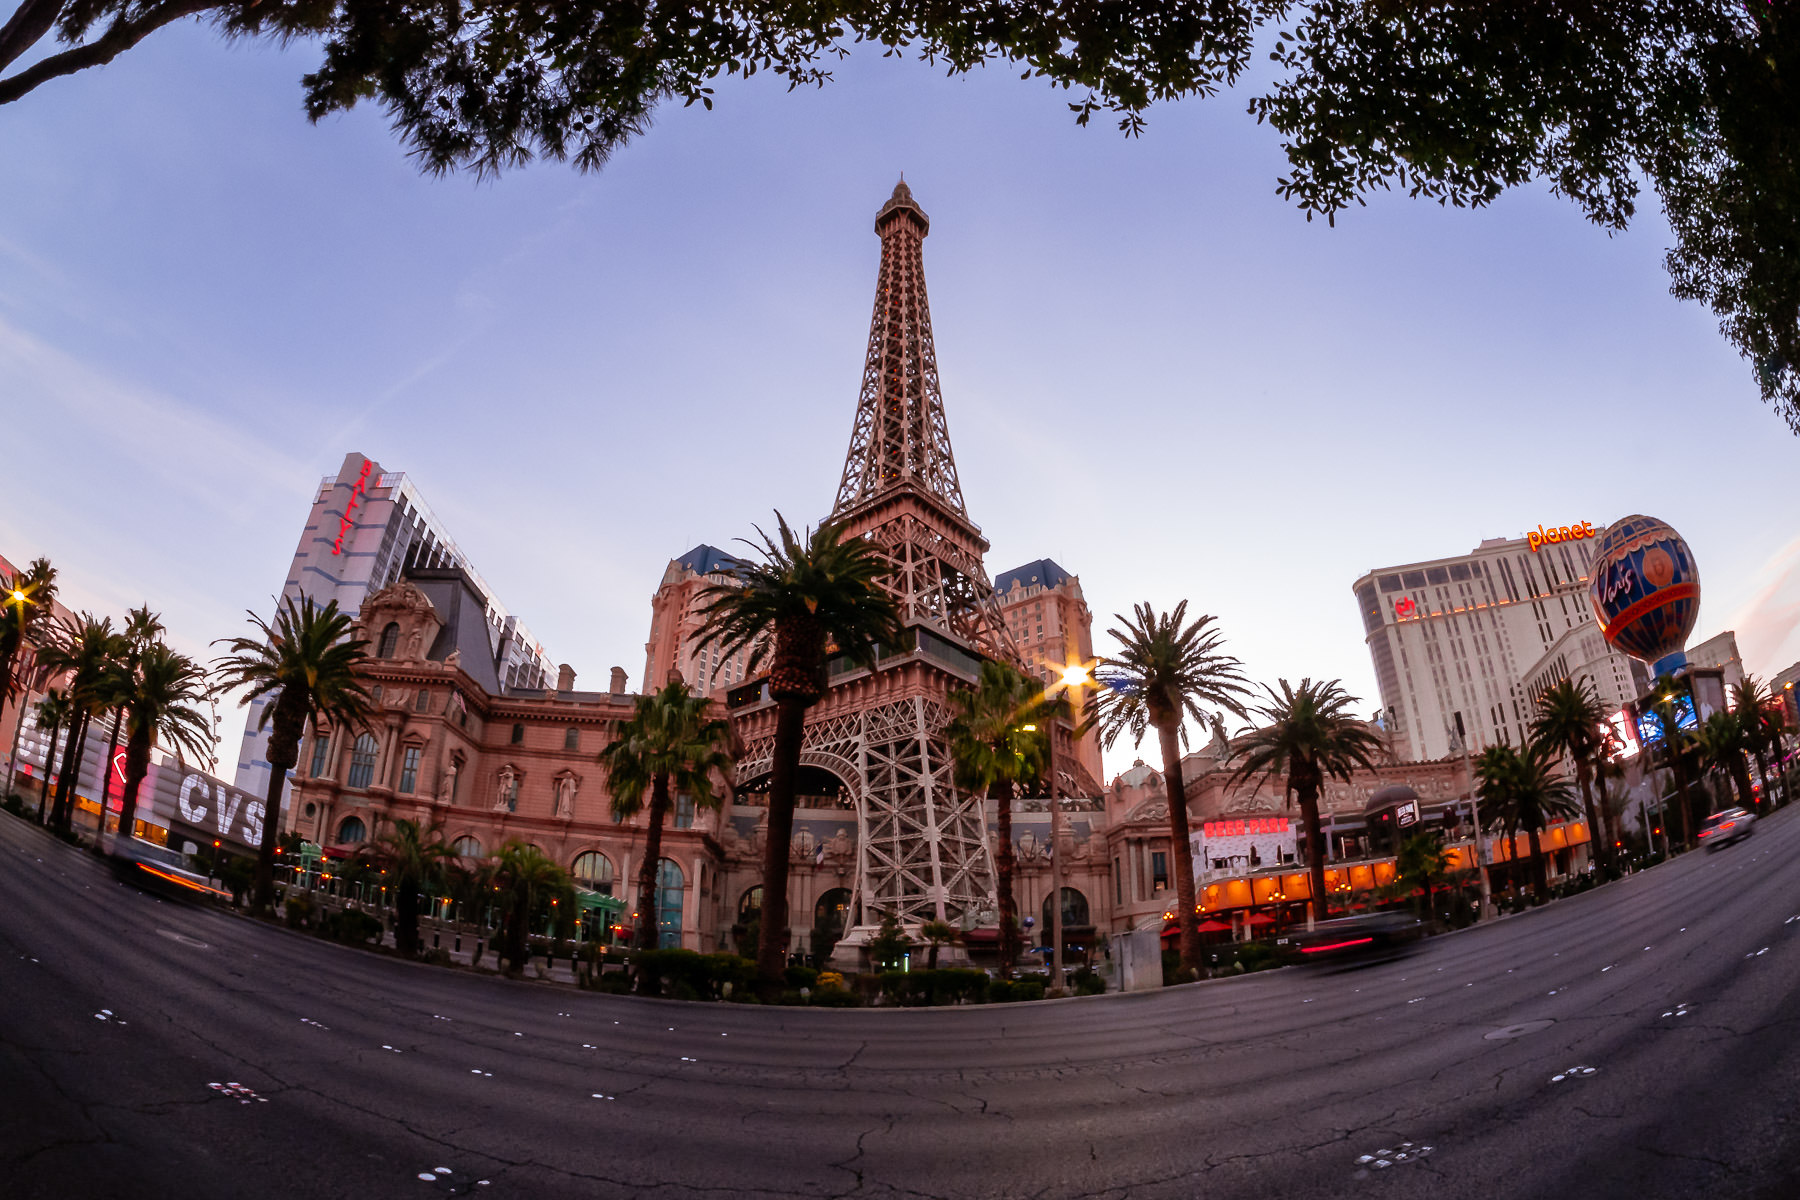 The replica Eiffel Tower at Paris Las Vegas rises into the morning sky.